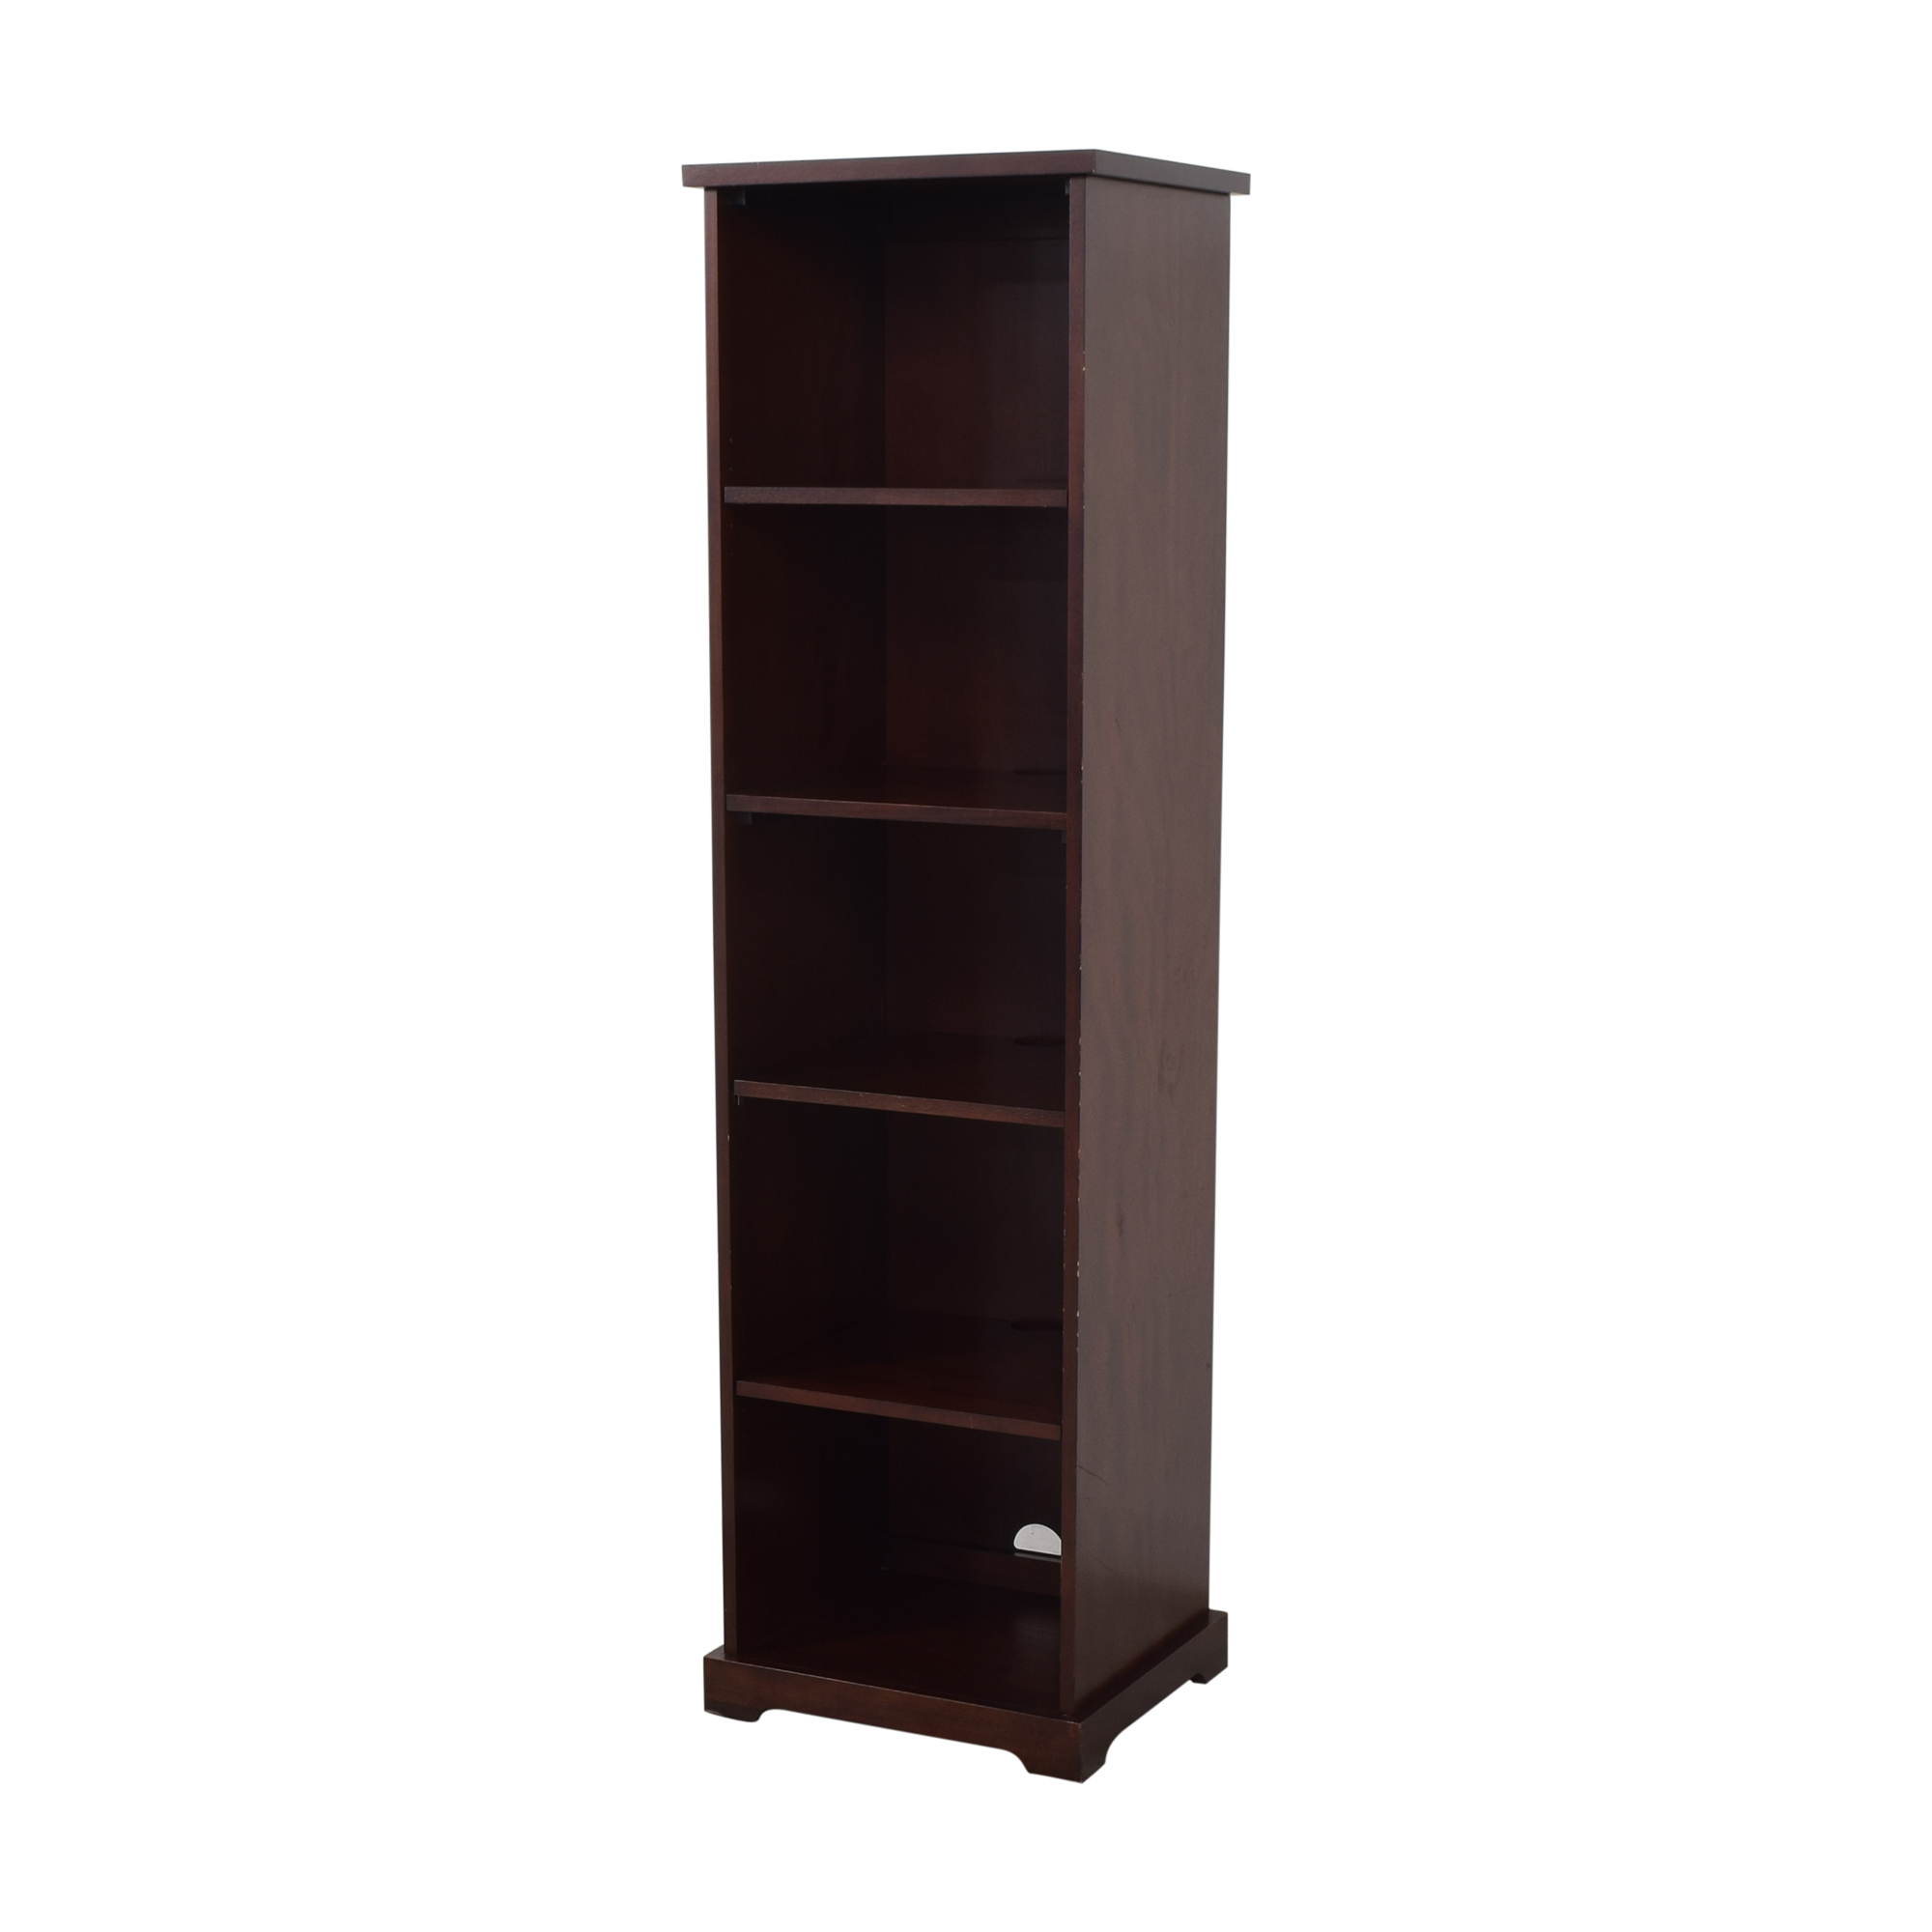 Pottery Barn Pottery Barn Samantha Bookcase for sale